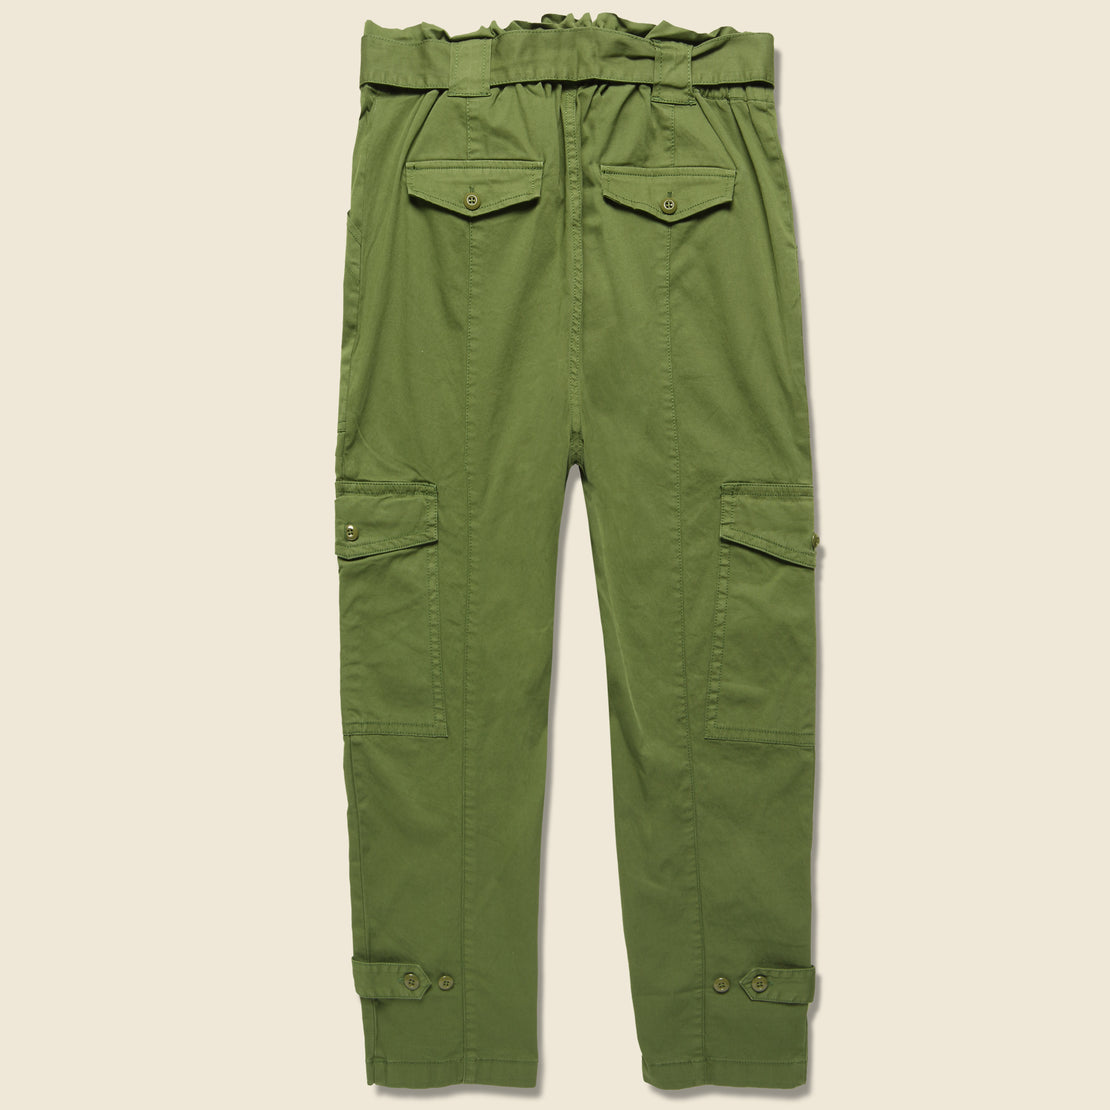 Expedition Pant - Army Olive